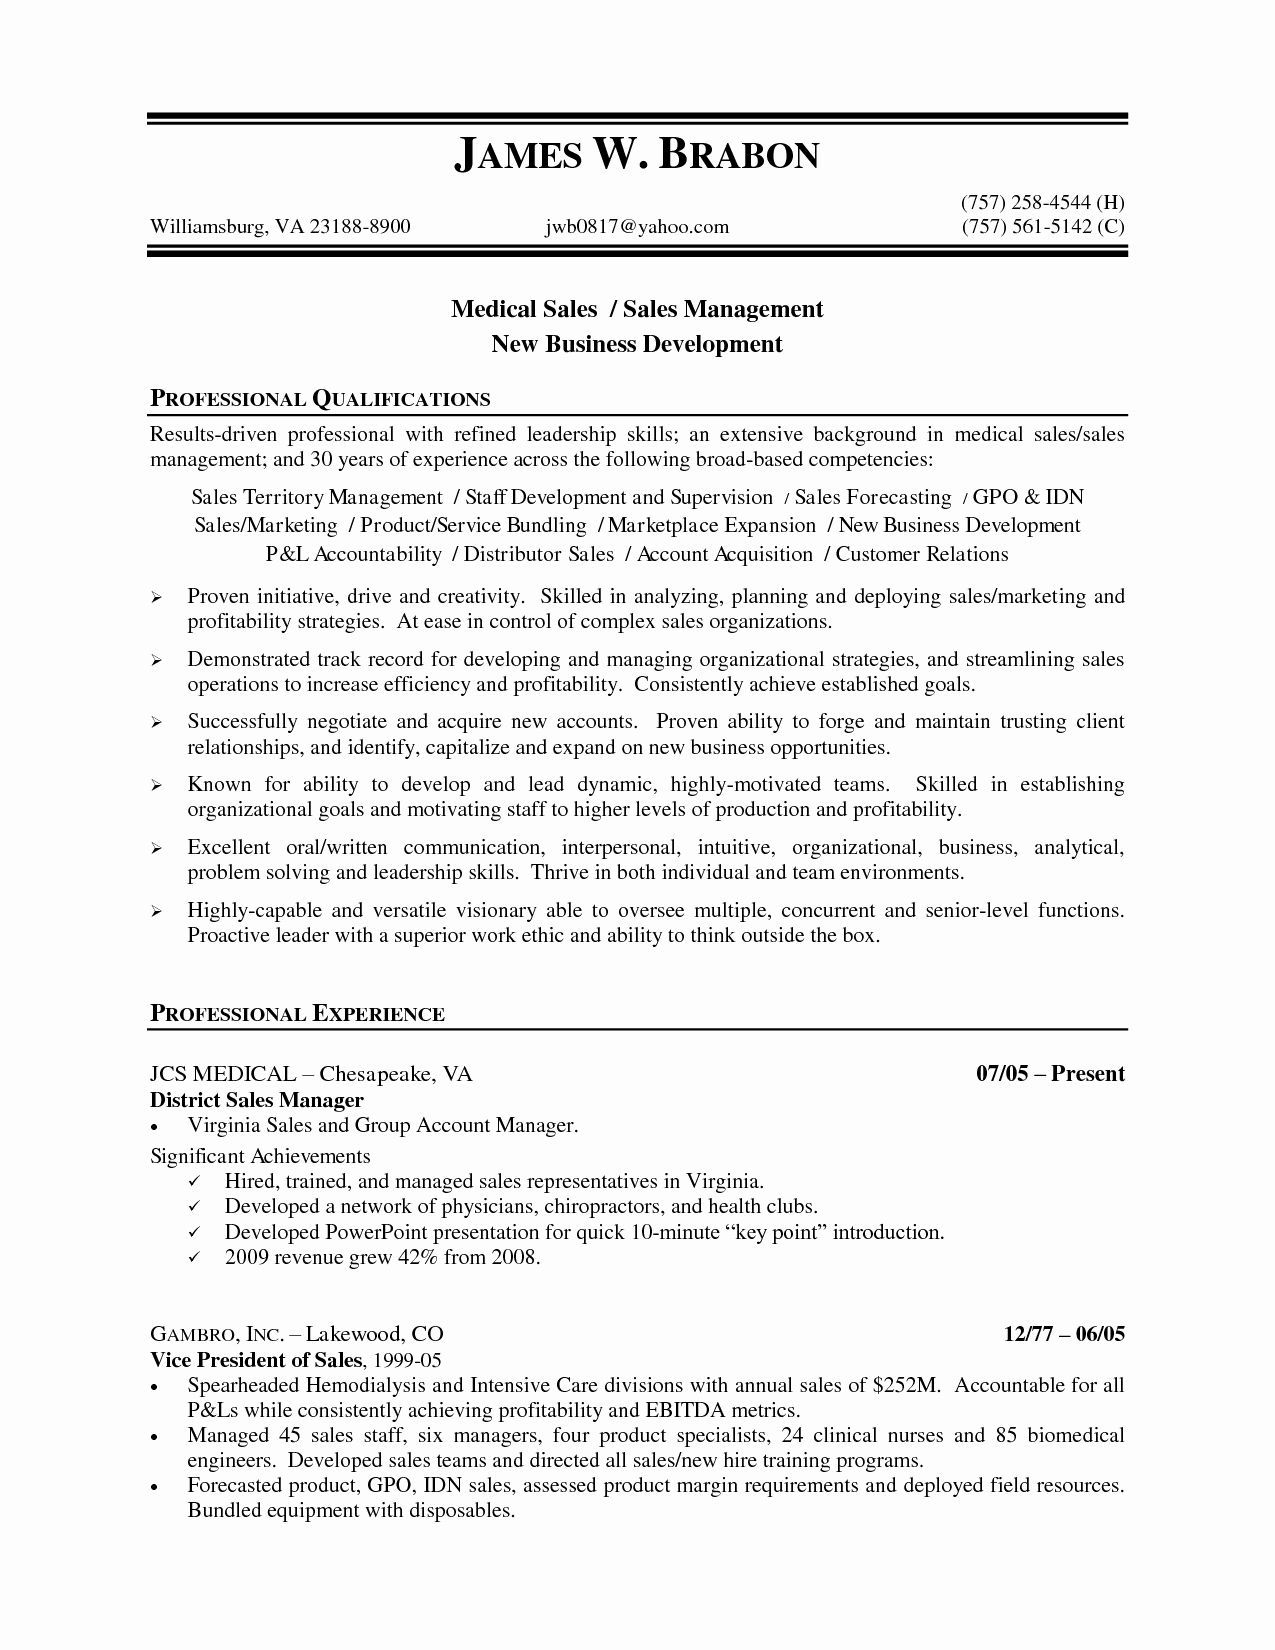 50 Awesome Liquor Sales Rep Resume in 2020 (With images